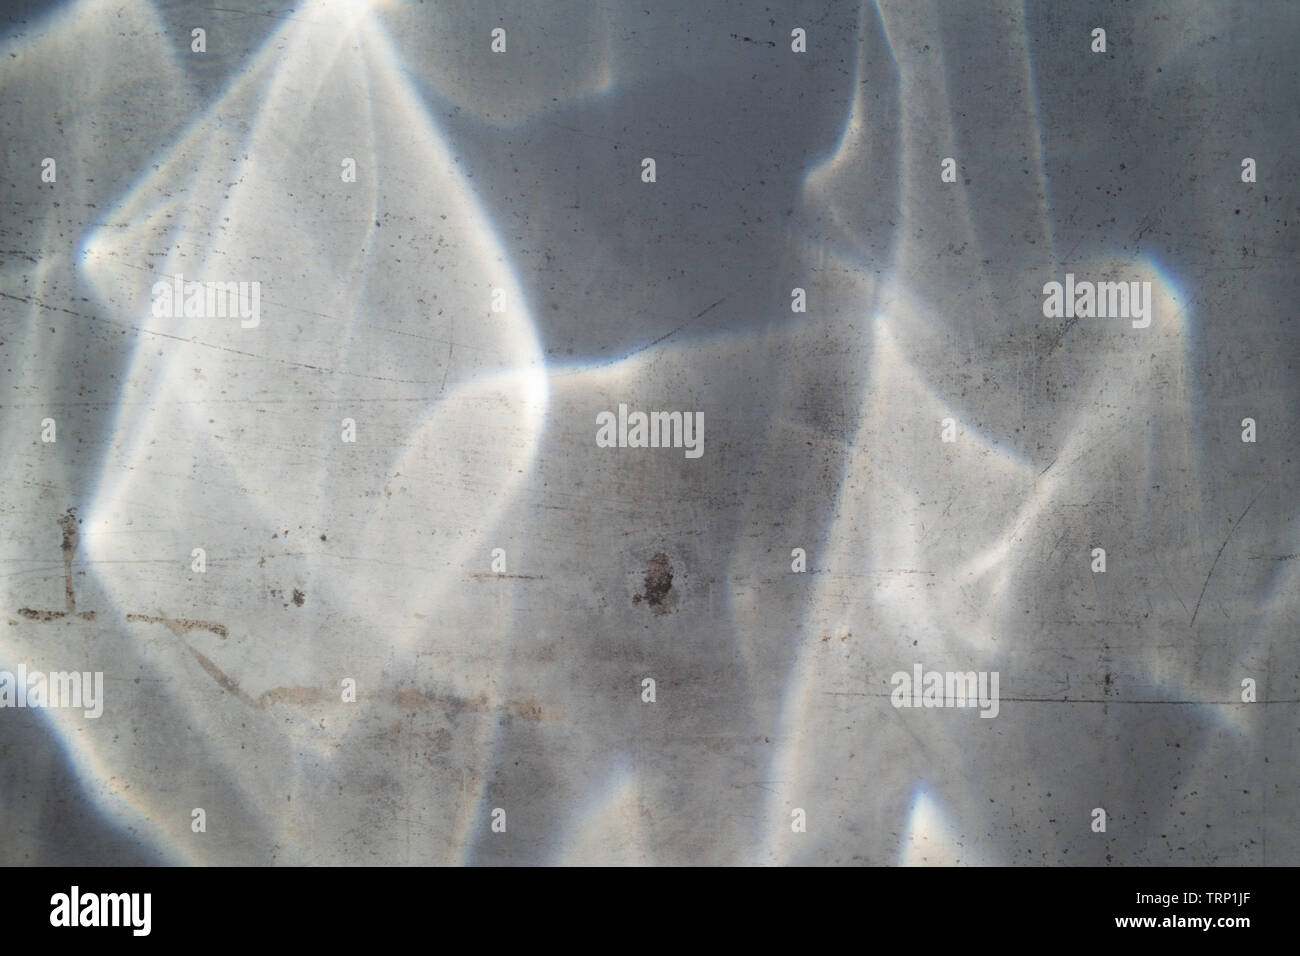 Sun rays distorted by glass on ceramic plates. - Stock Image